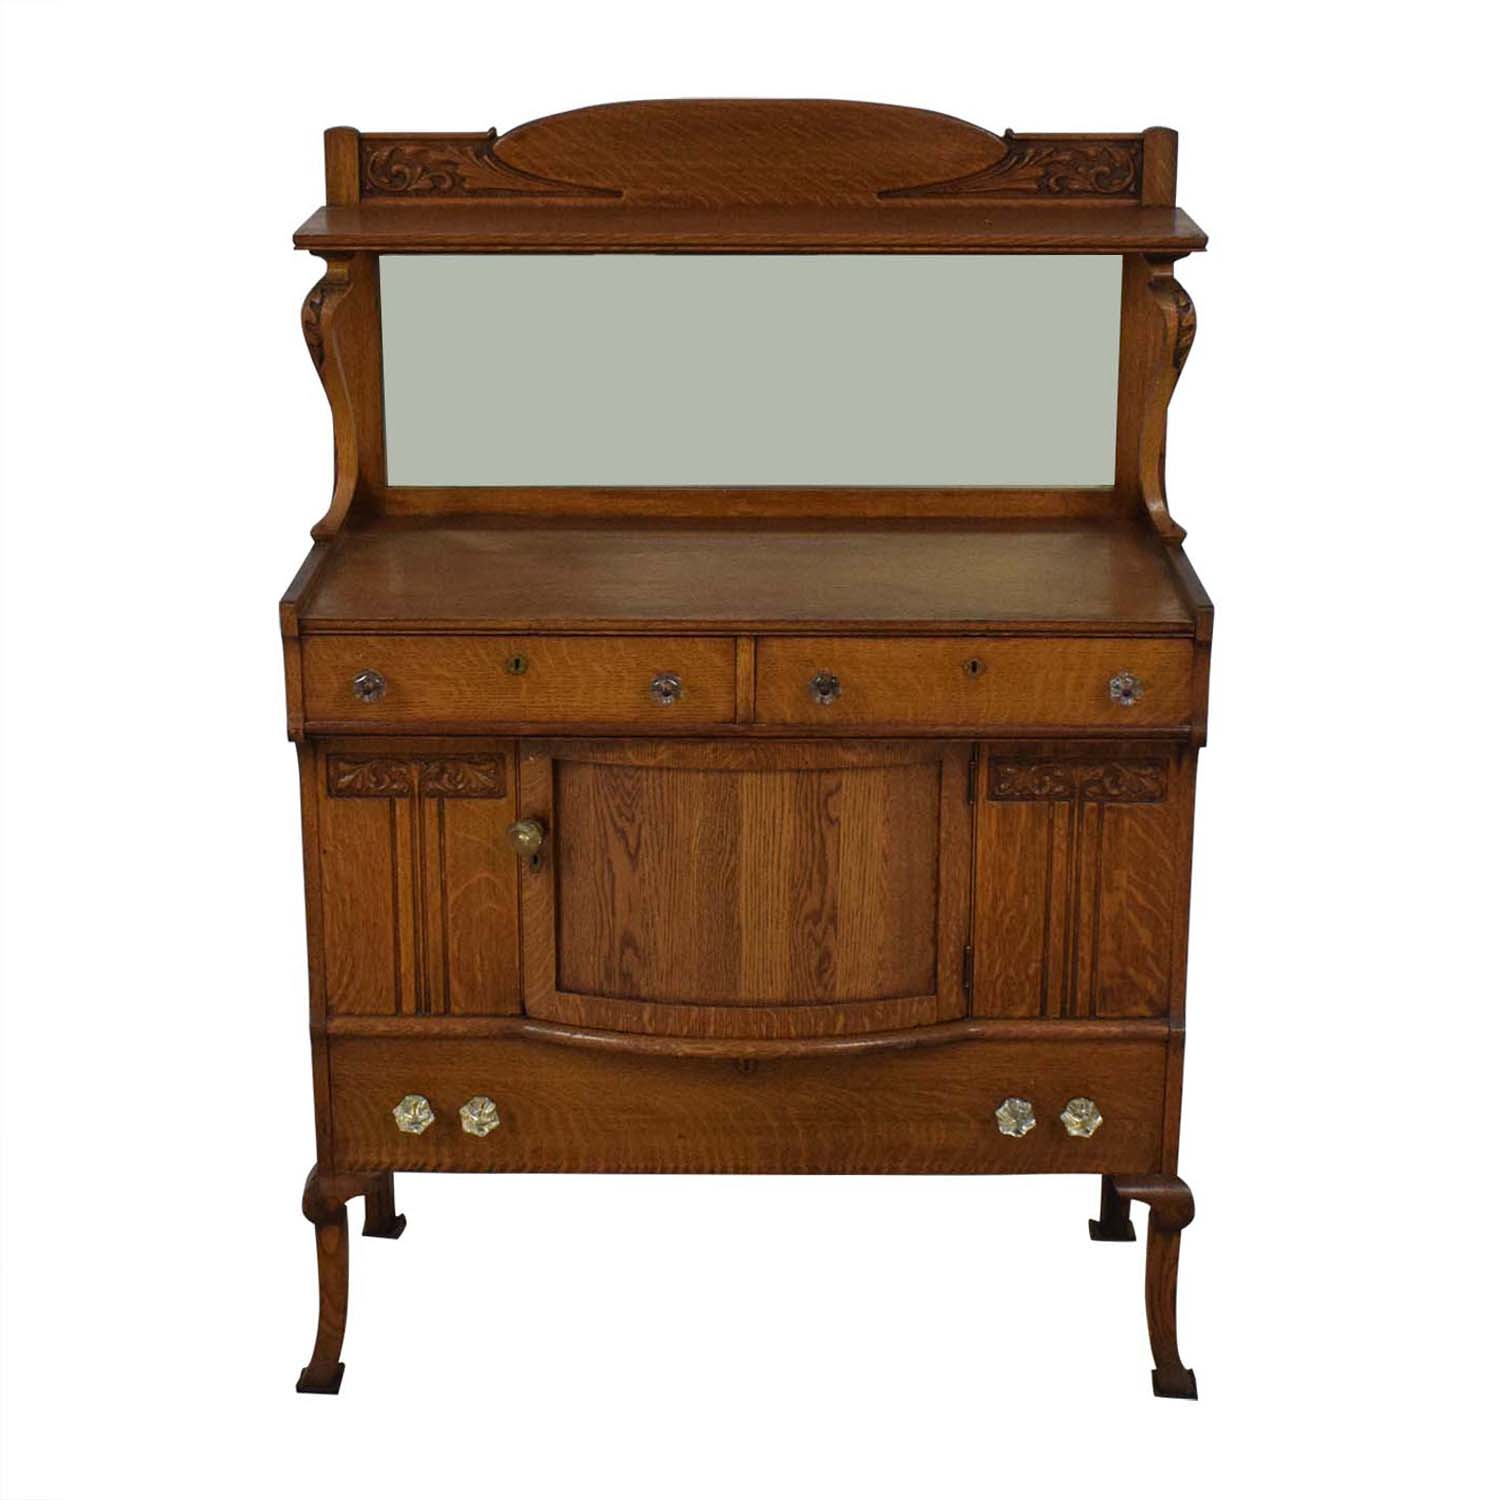 Antique Buffet With Mirror >> 81 Off Antique Buffet Cabinet With Mirror Storage